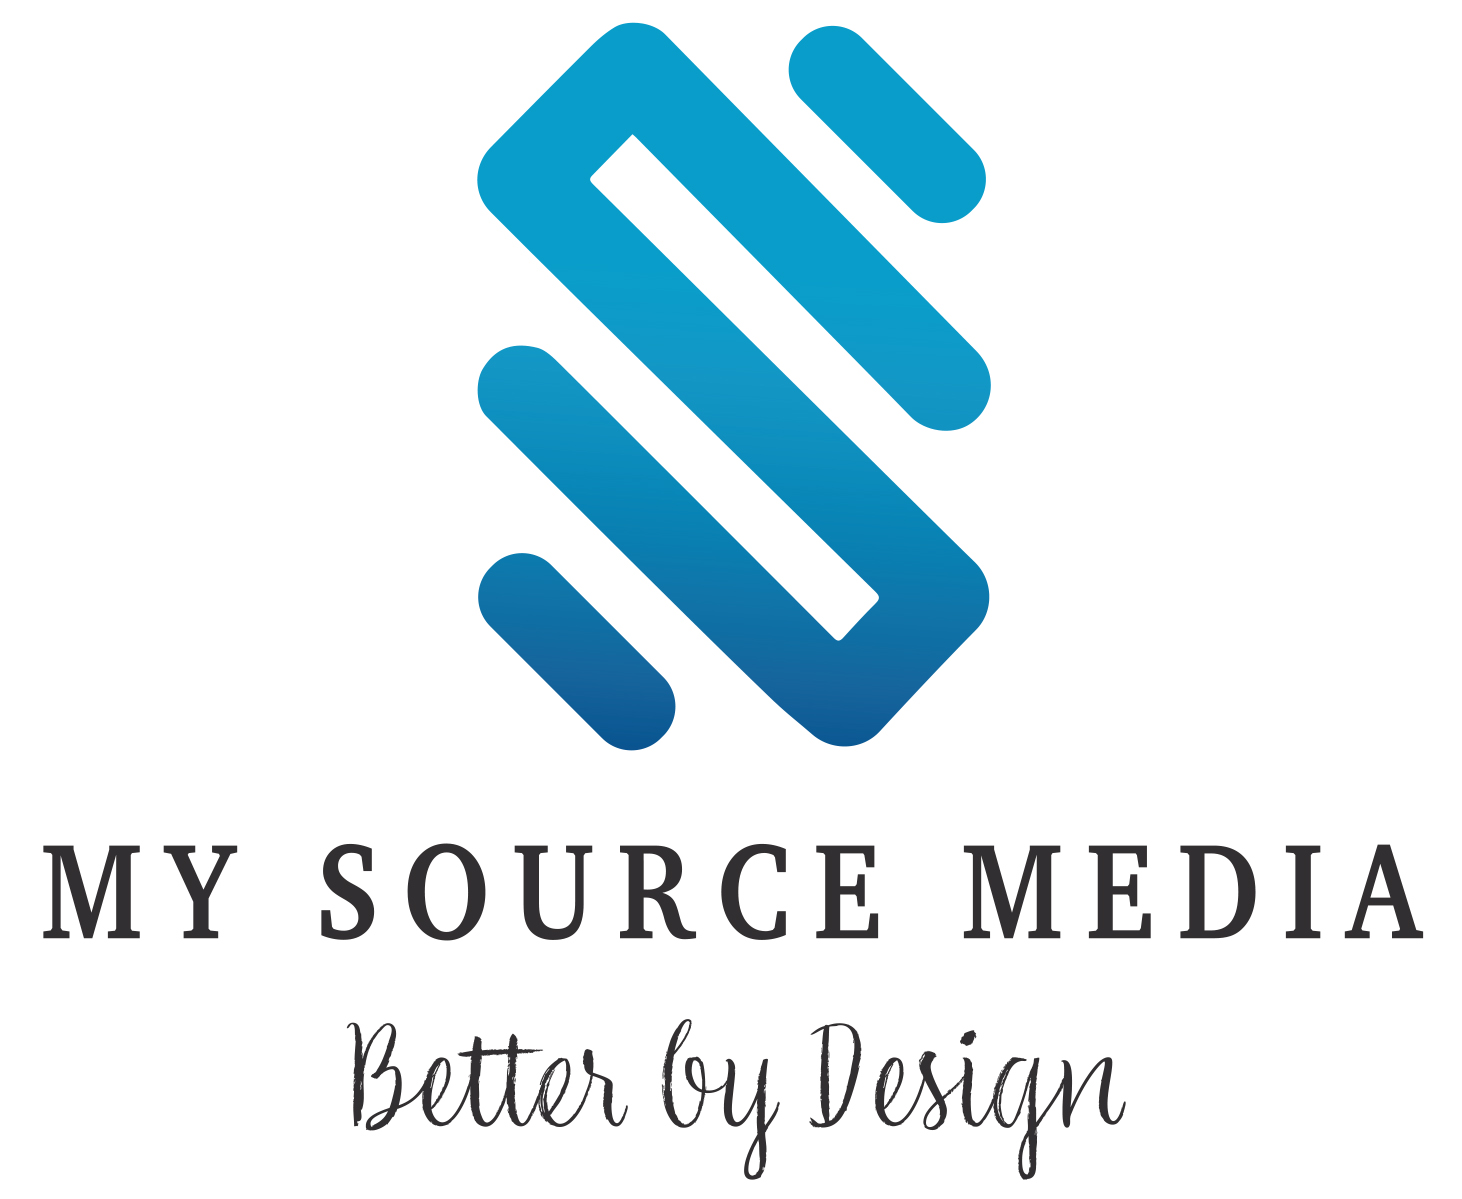 My Source Media